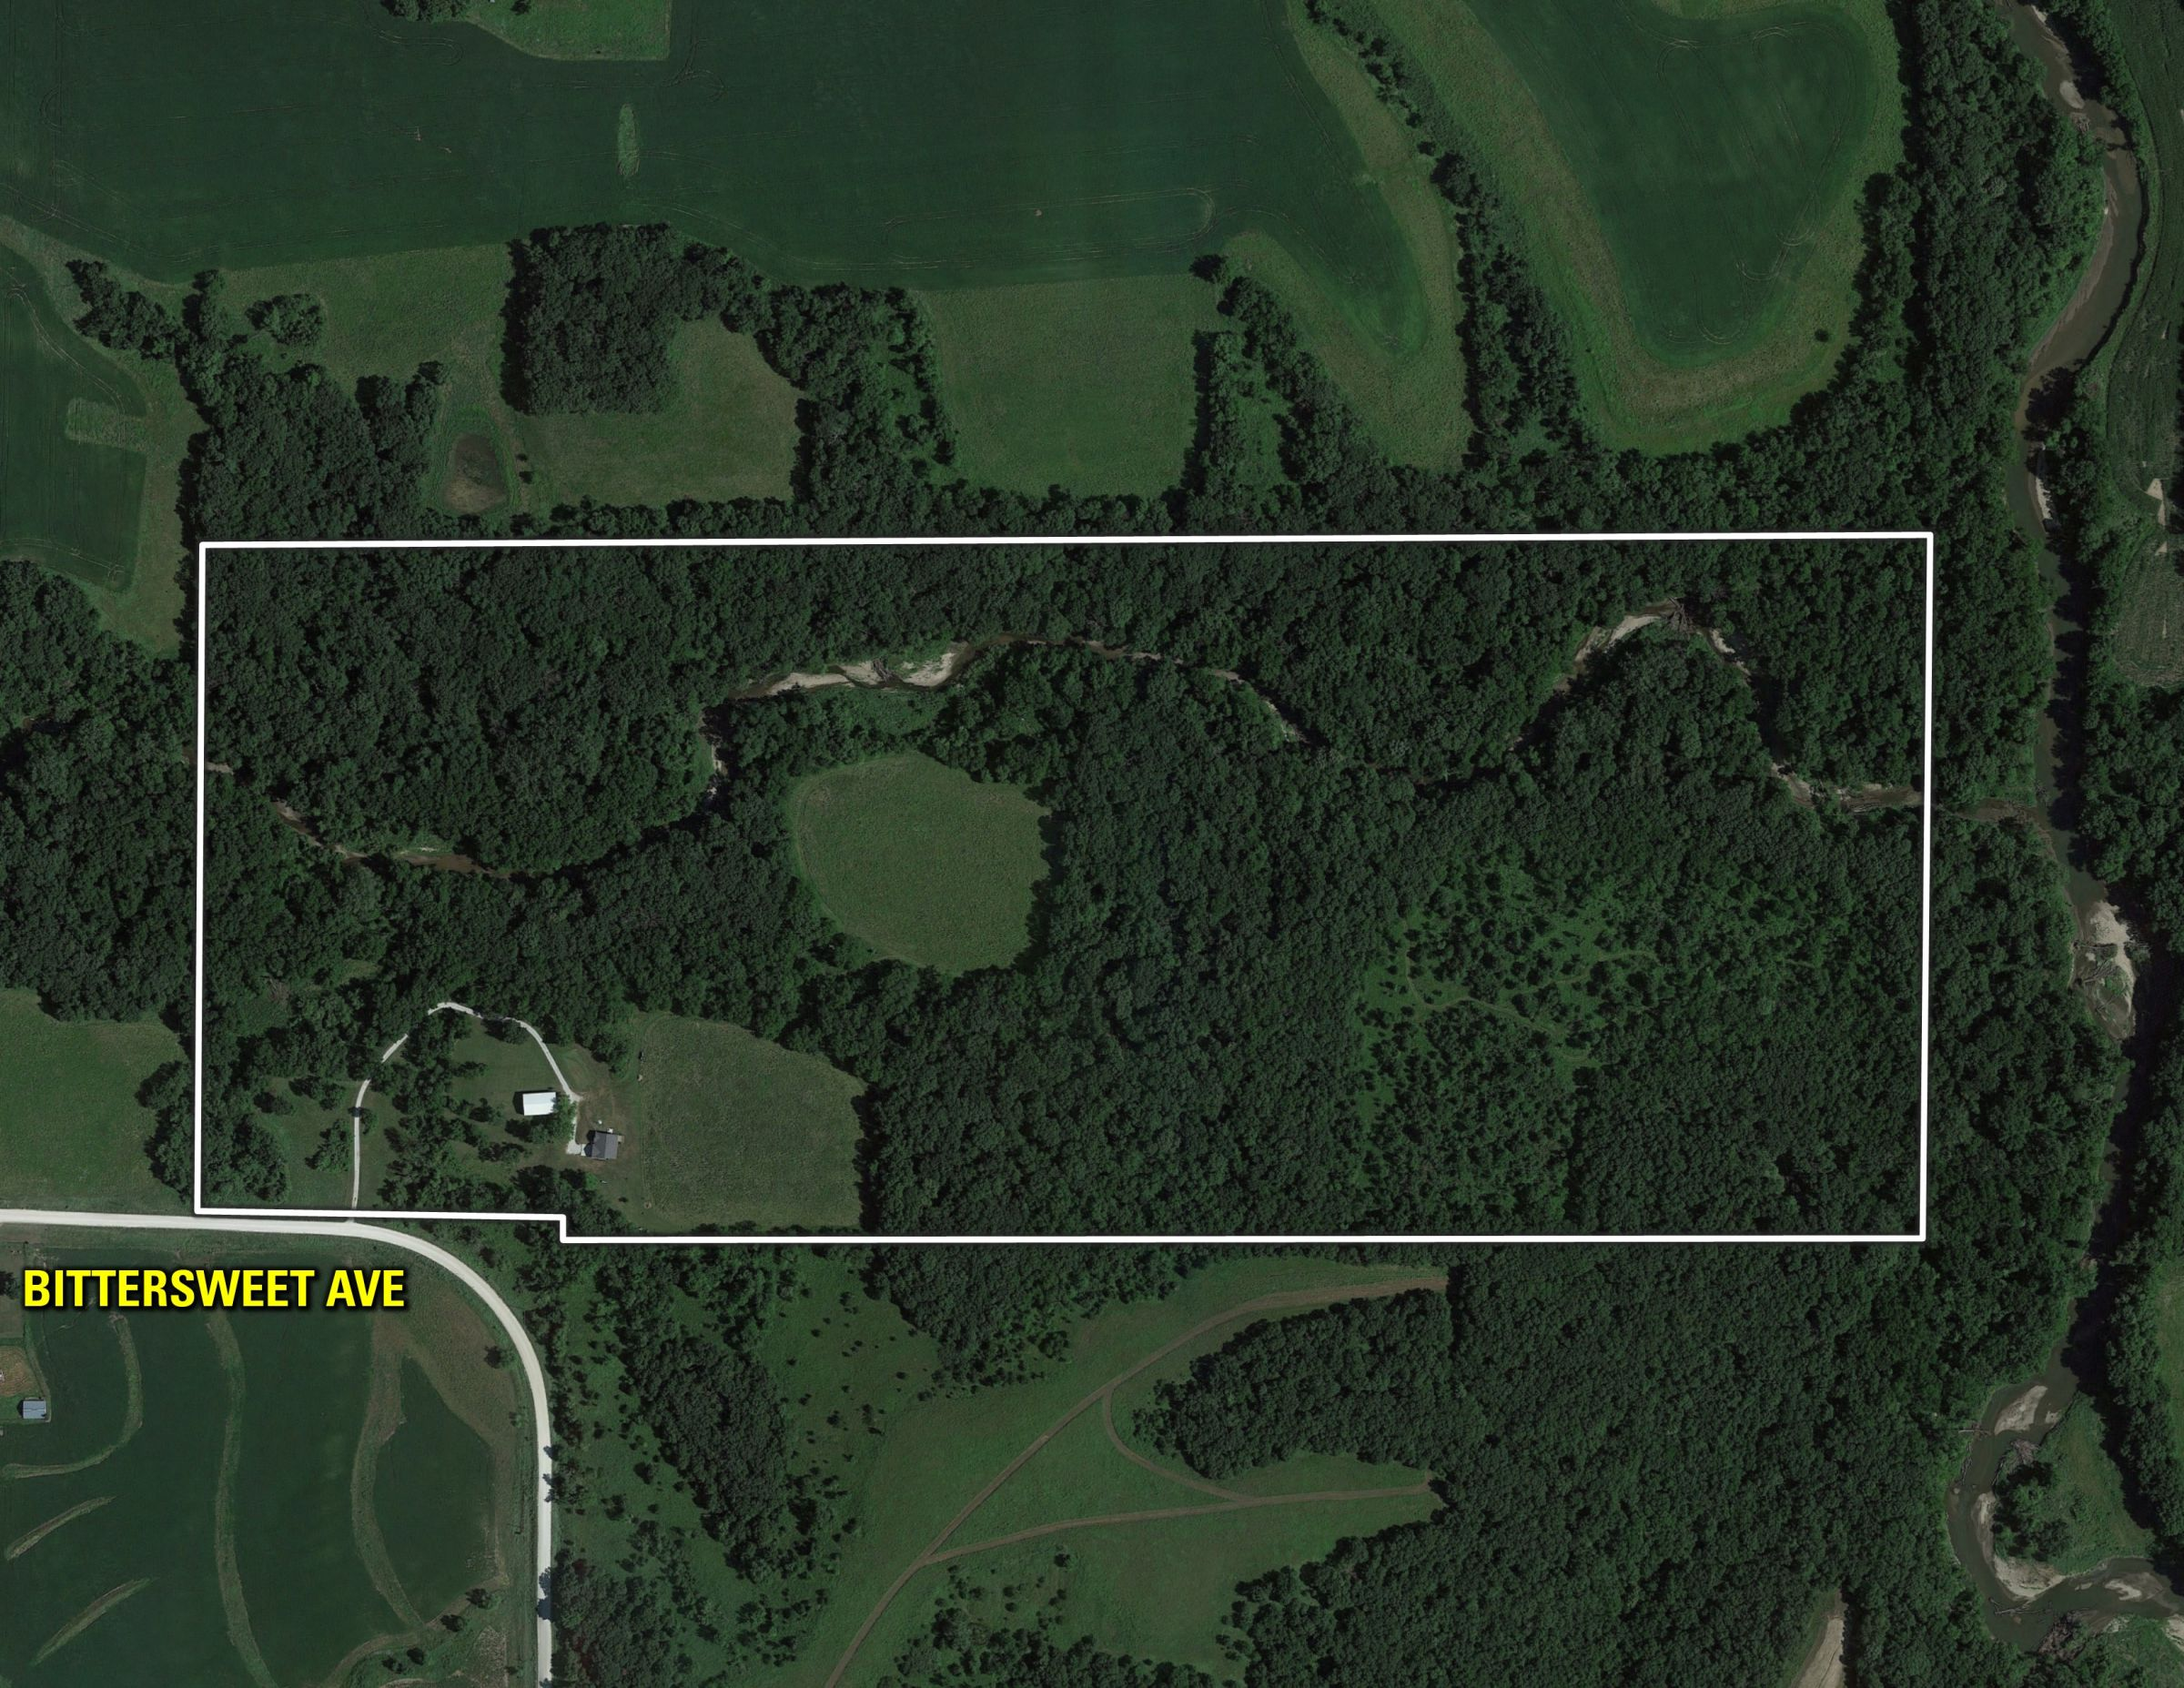 residential-land-madison-county-iowa-106-acres-listing-number-15123-1-2020-08-19-190934.jpg